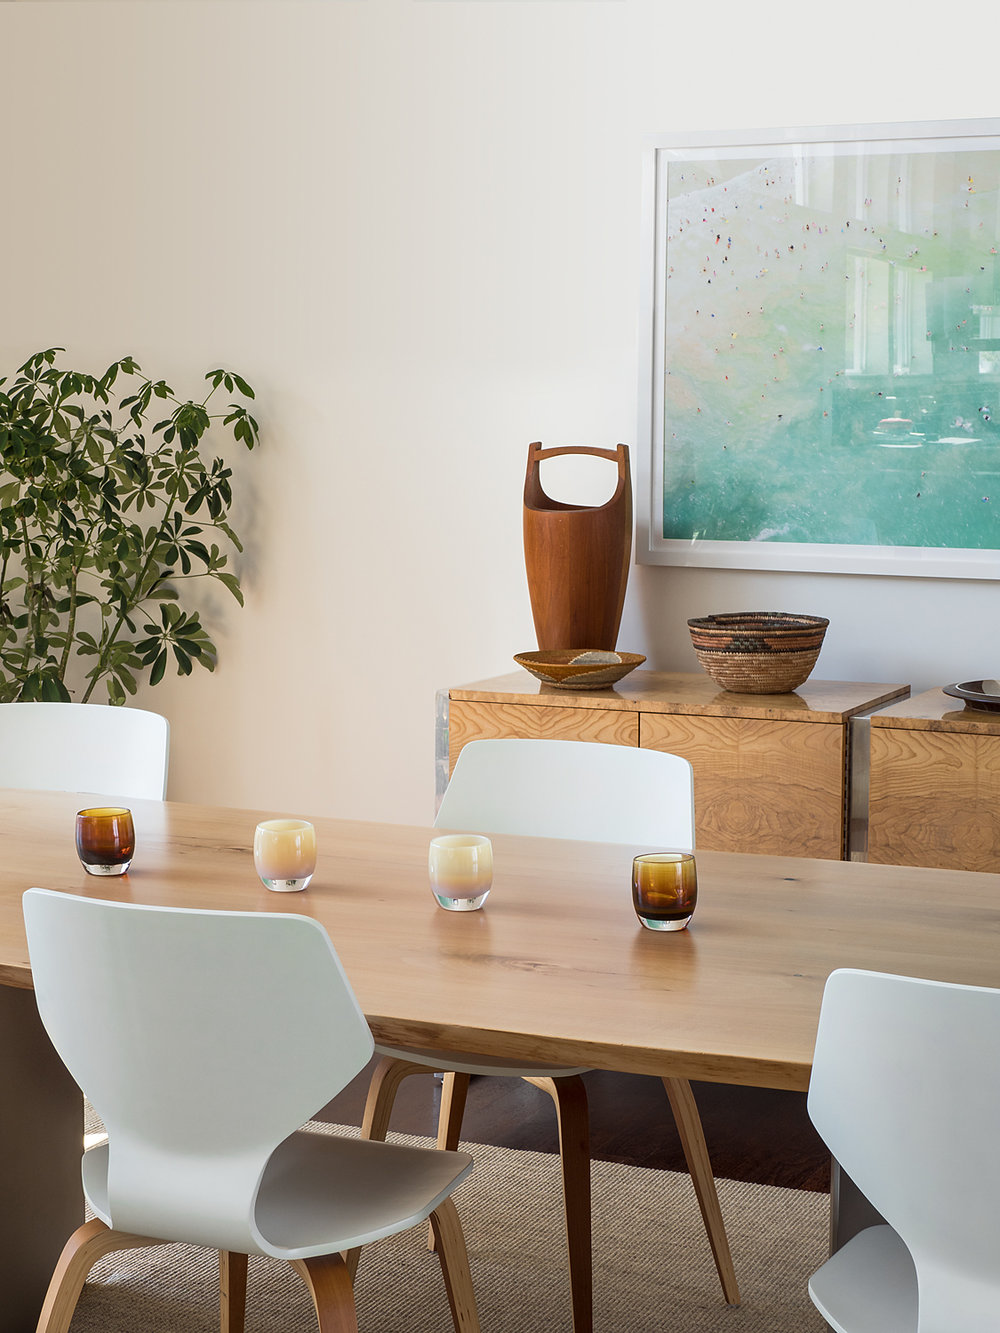 dining room table with modern chairs and artwork